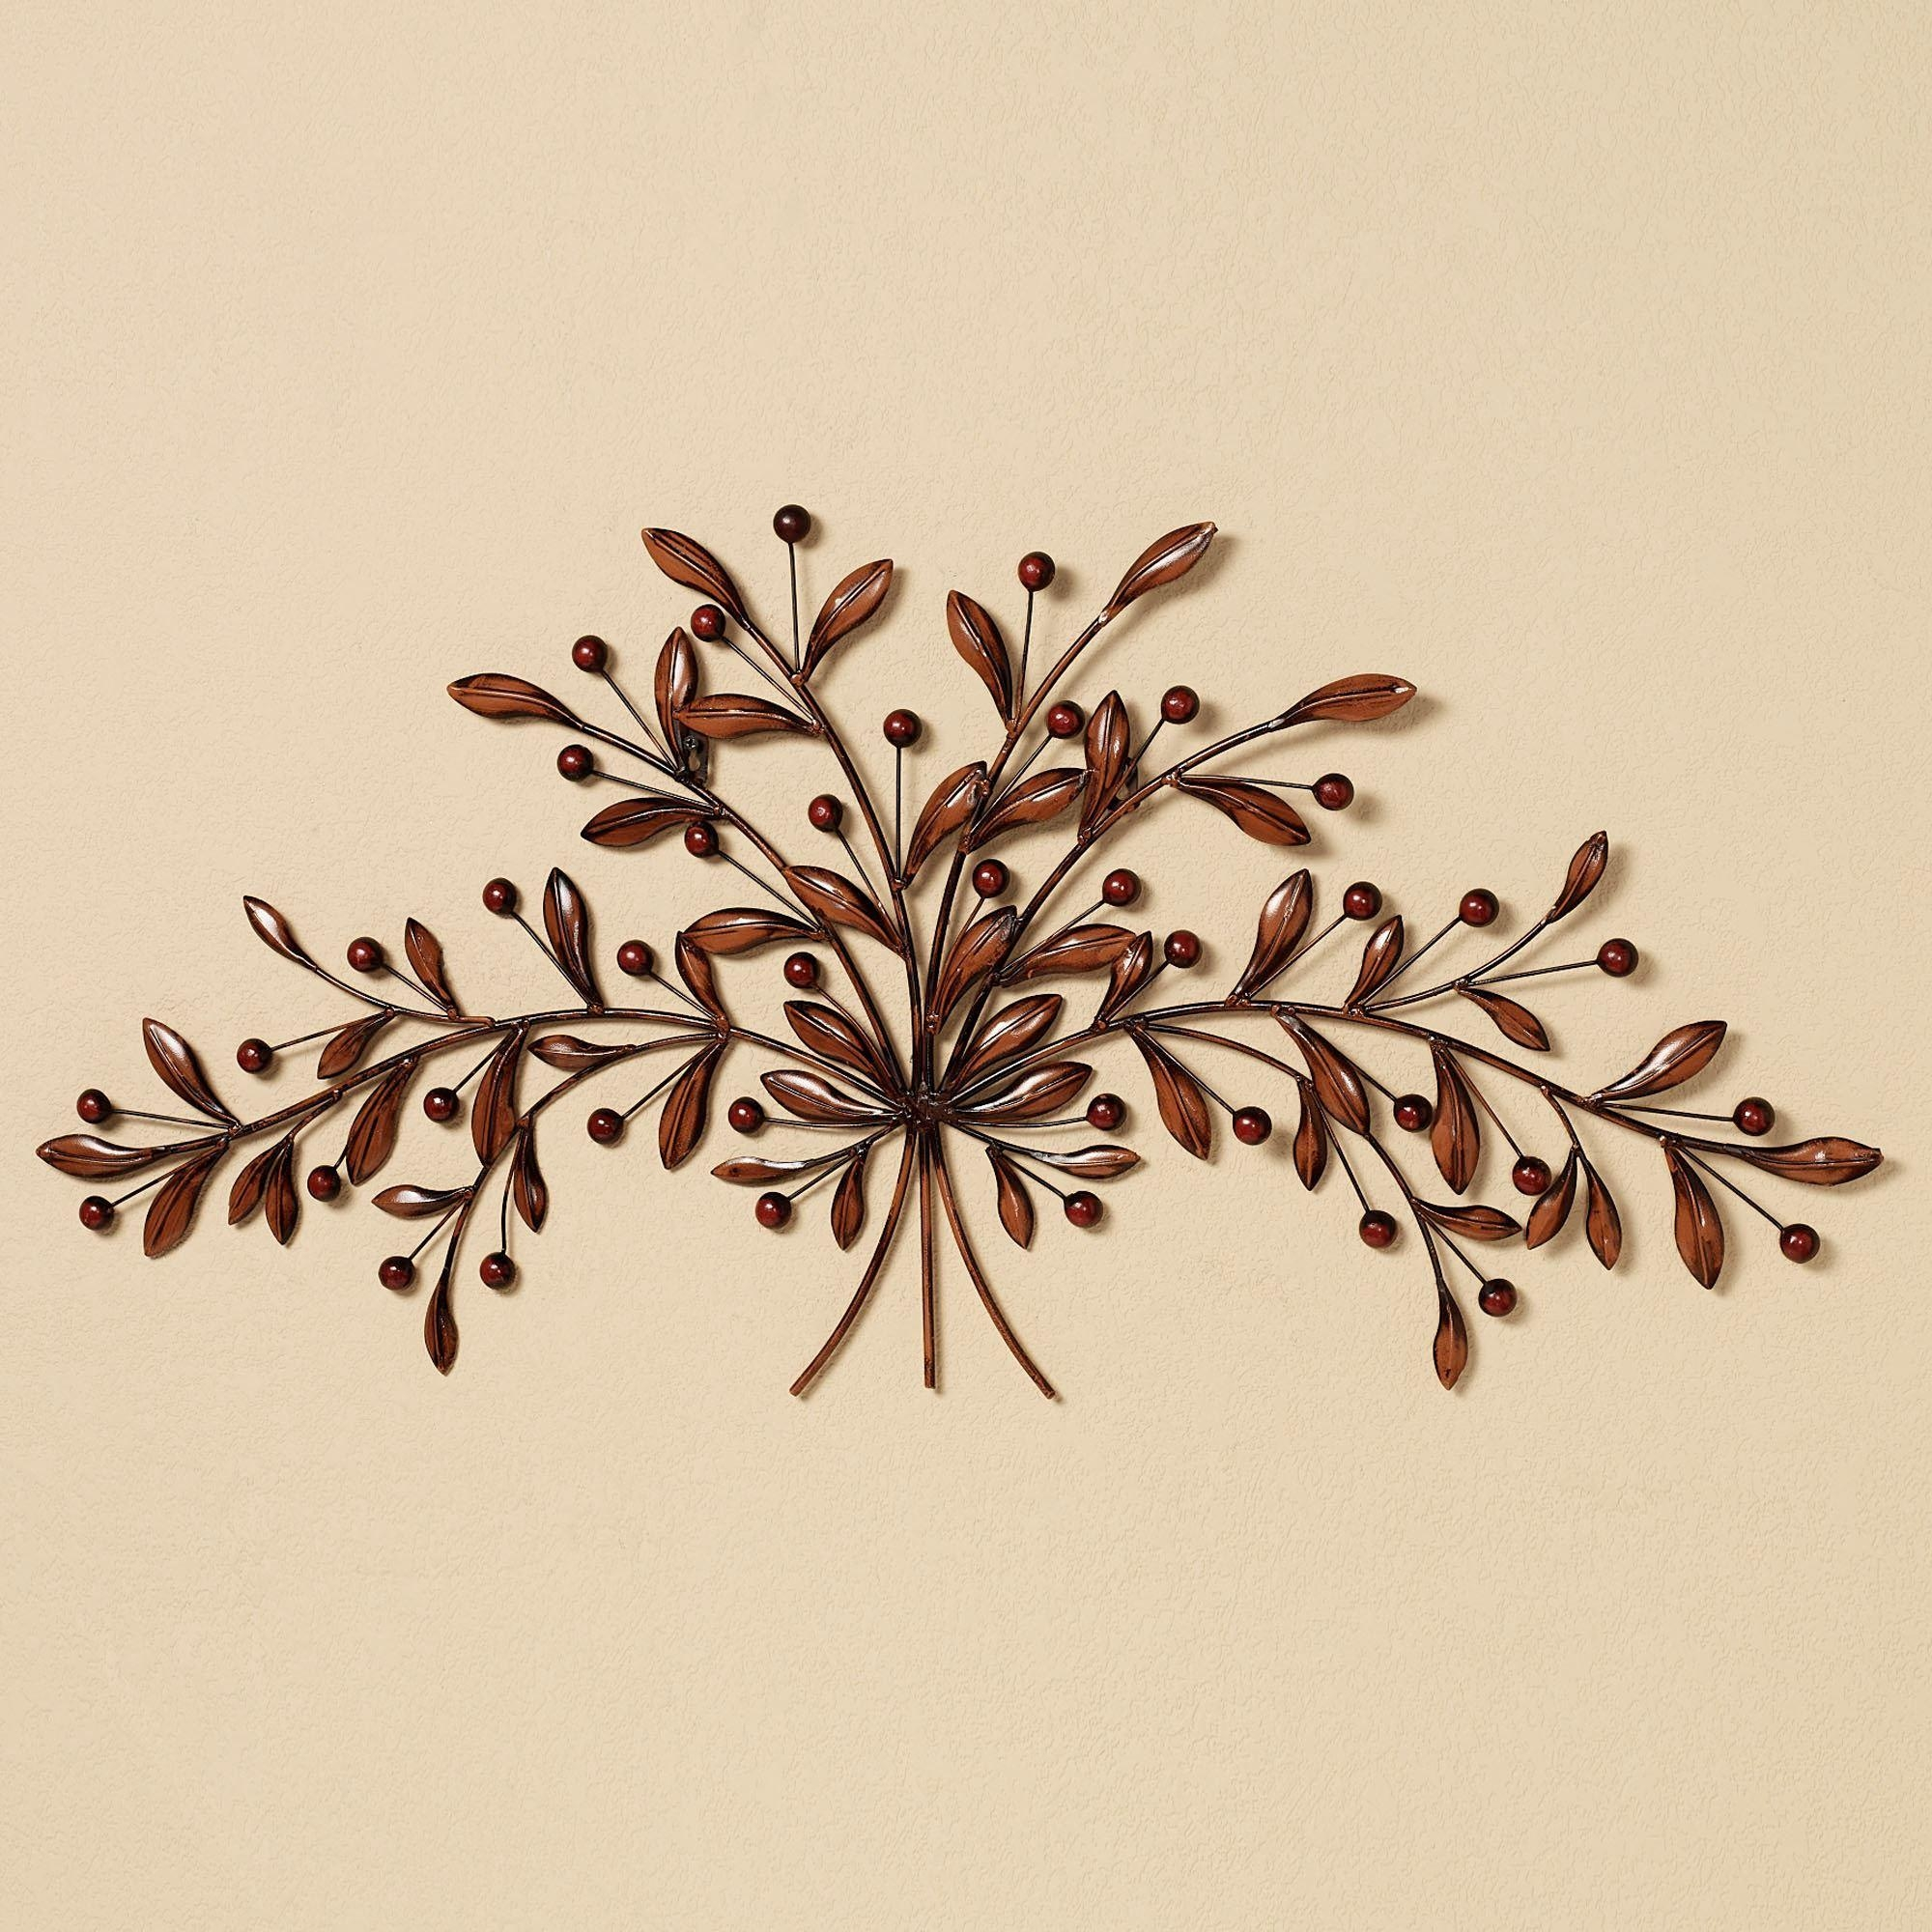 Cantabria Branch Metal Wall Art Spray Inside Exclusive Wall Art (Image 3 of 20)